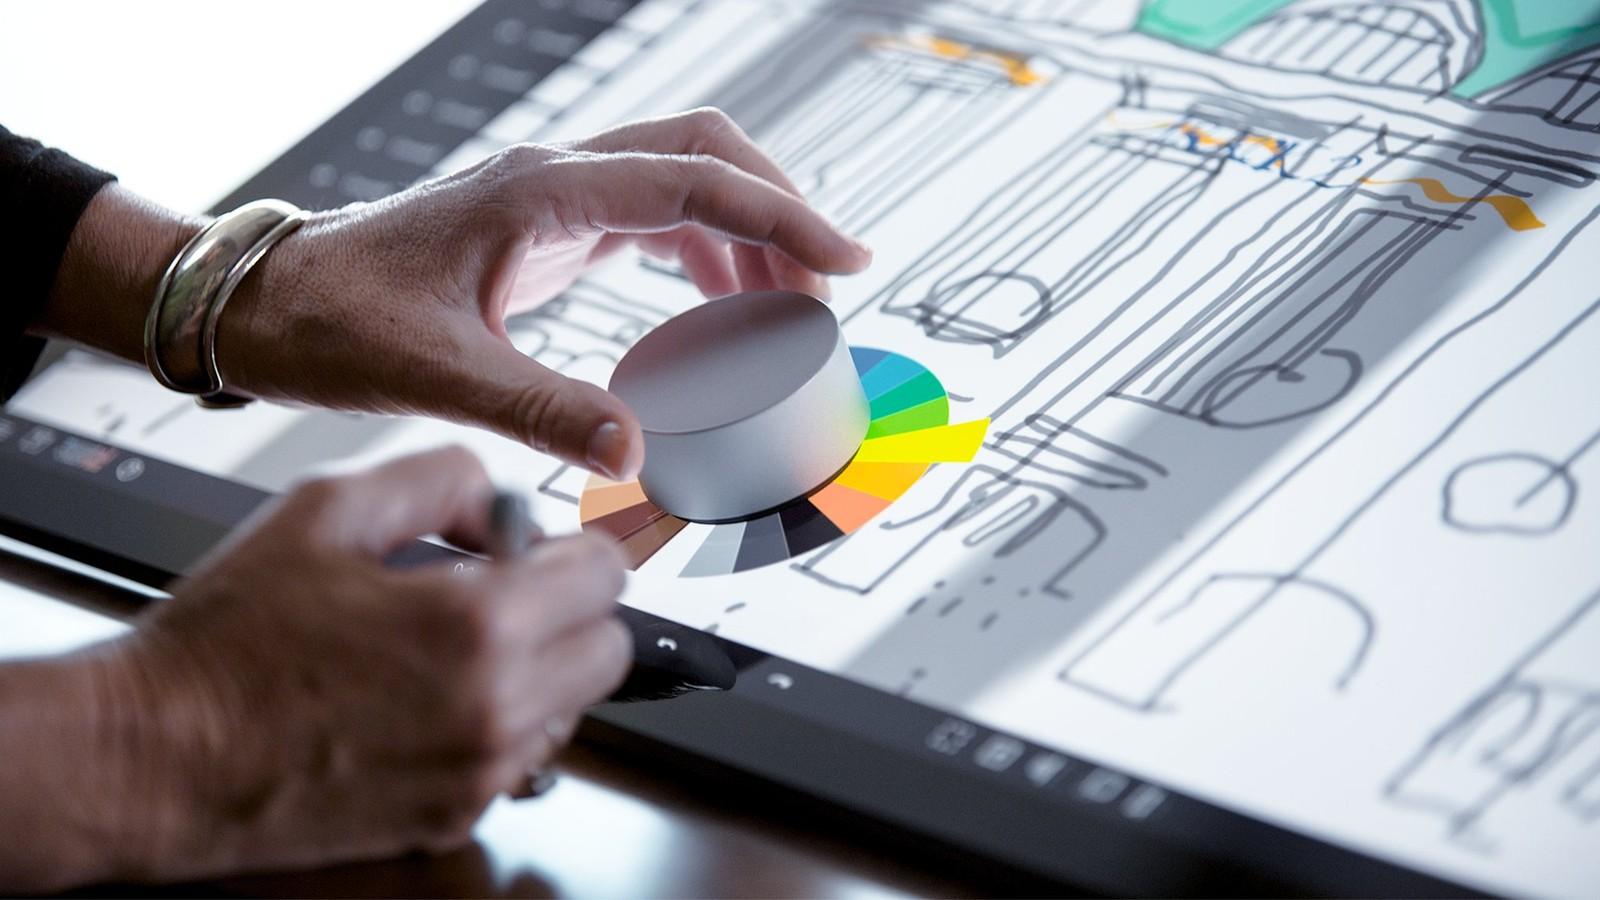 Surface Pro - An innovative design and workflow for Microsoft graphics